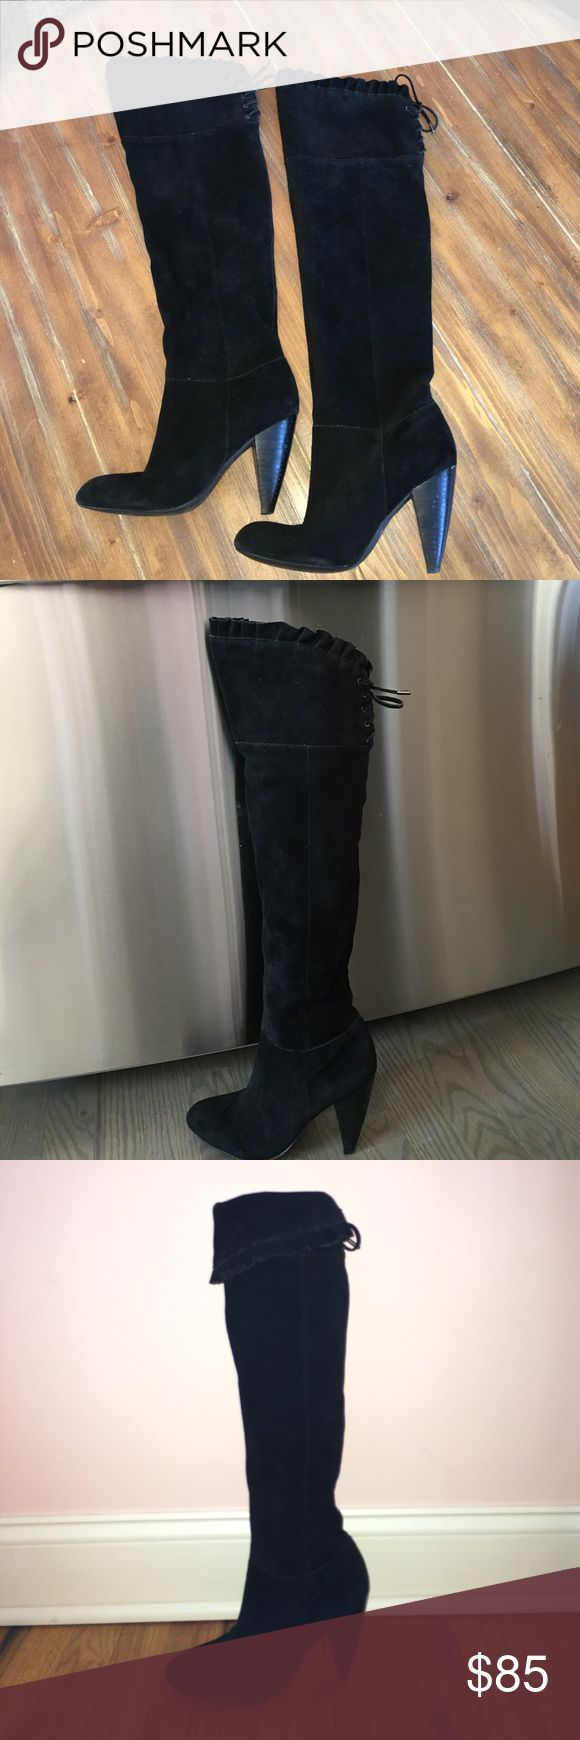 GORGEOUS BCBG suede boots! Suede over the knee ruffle top boots with tie behind the knee. These boots can also be worn folded over for an under the knee fit! The suede is in gorgeous condition and there is minor wear and tear to the heel. Dress these boots up with a sexy dress or go for a more casual look over a pair of jeans!! MAKE AN OFFER♠️⬛️▪️ BCBGeneration Shoes Over the Knee Boots